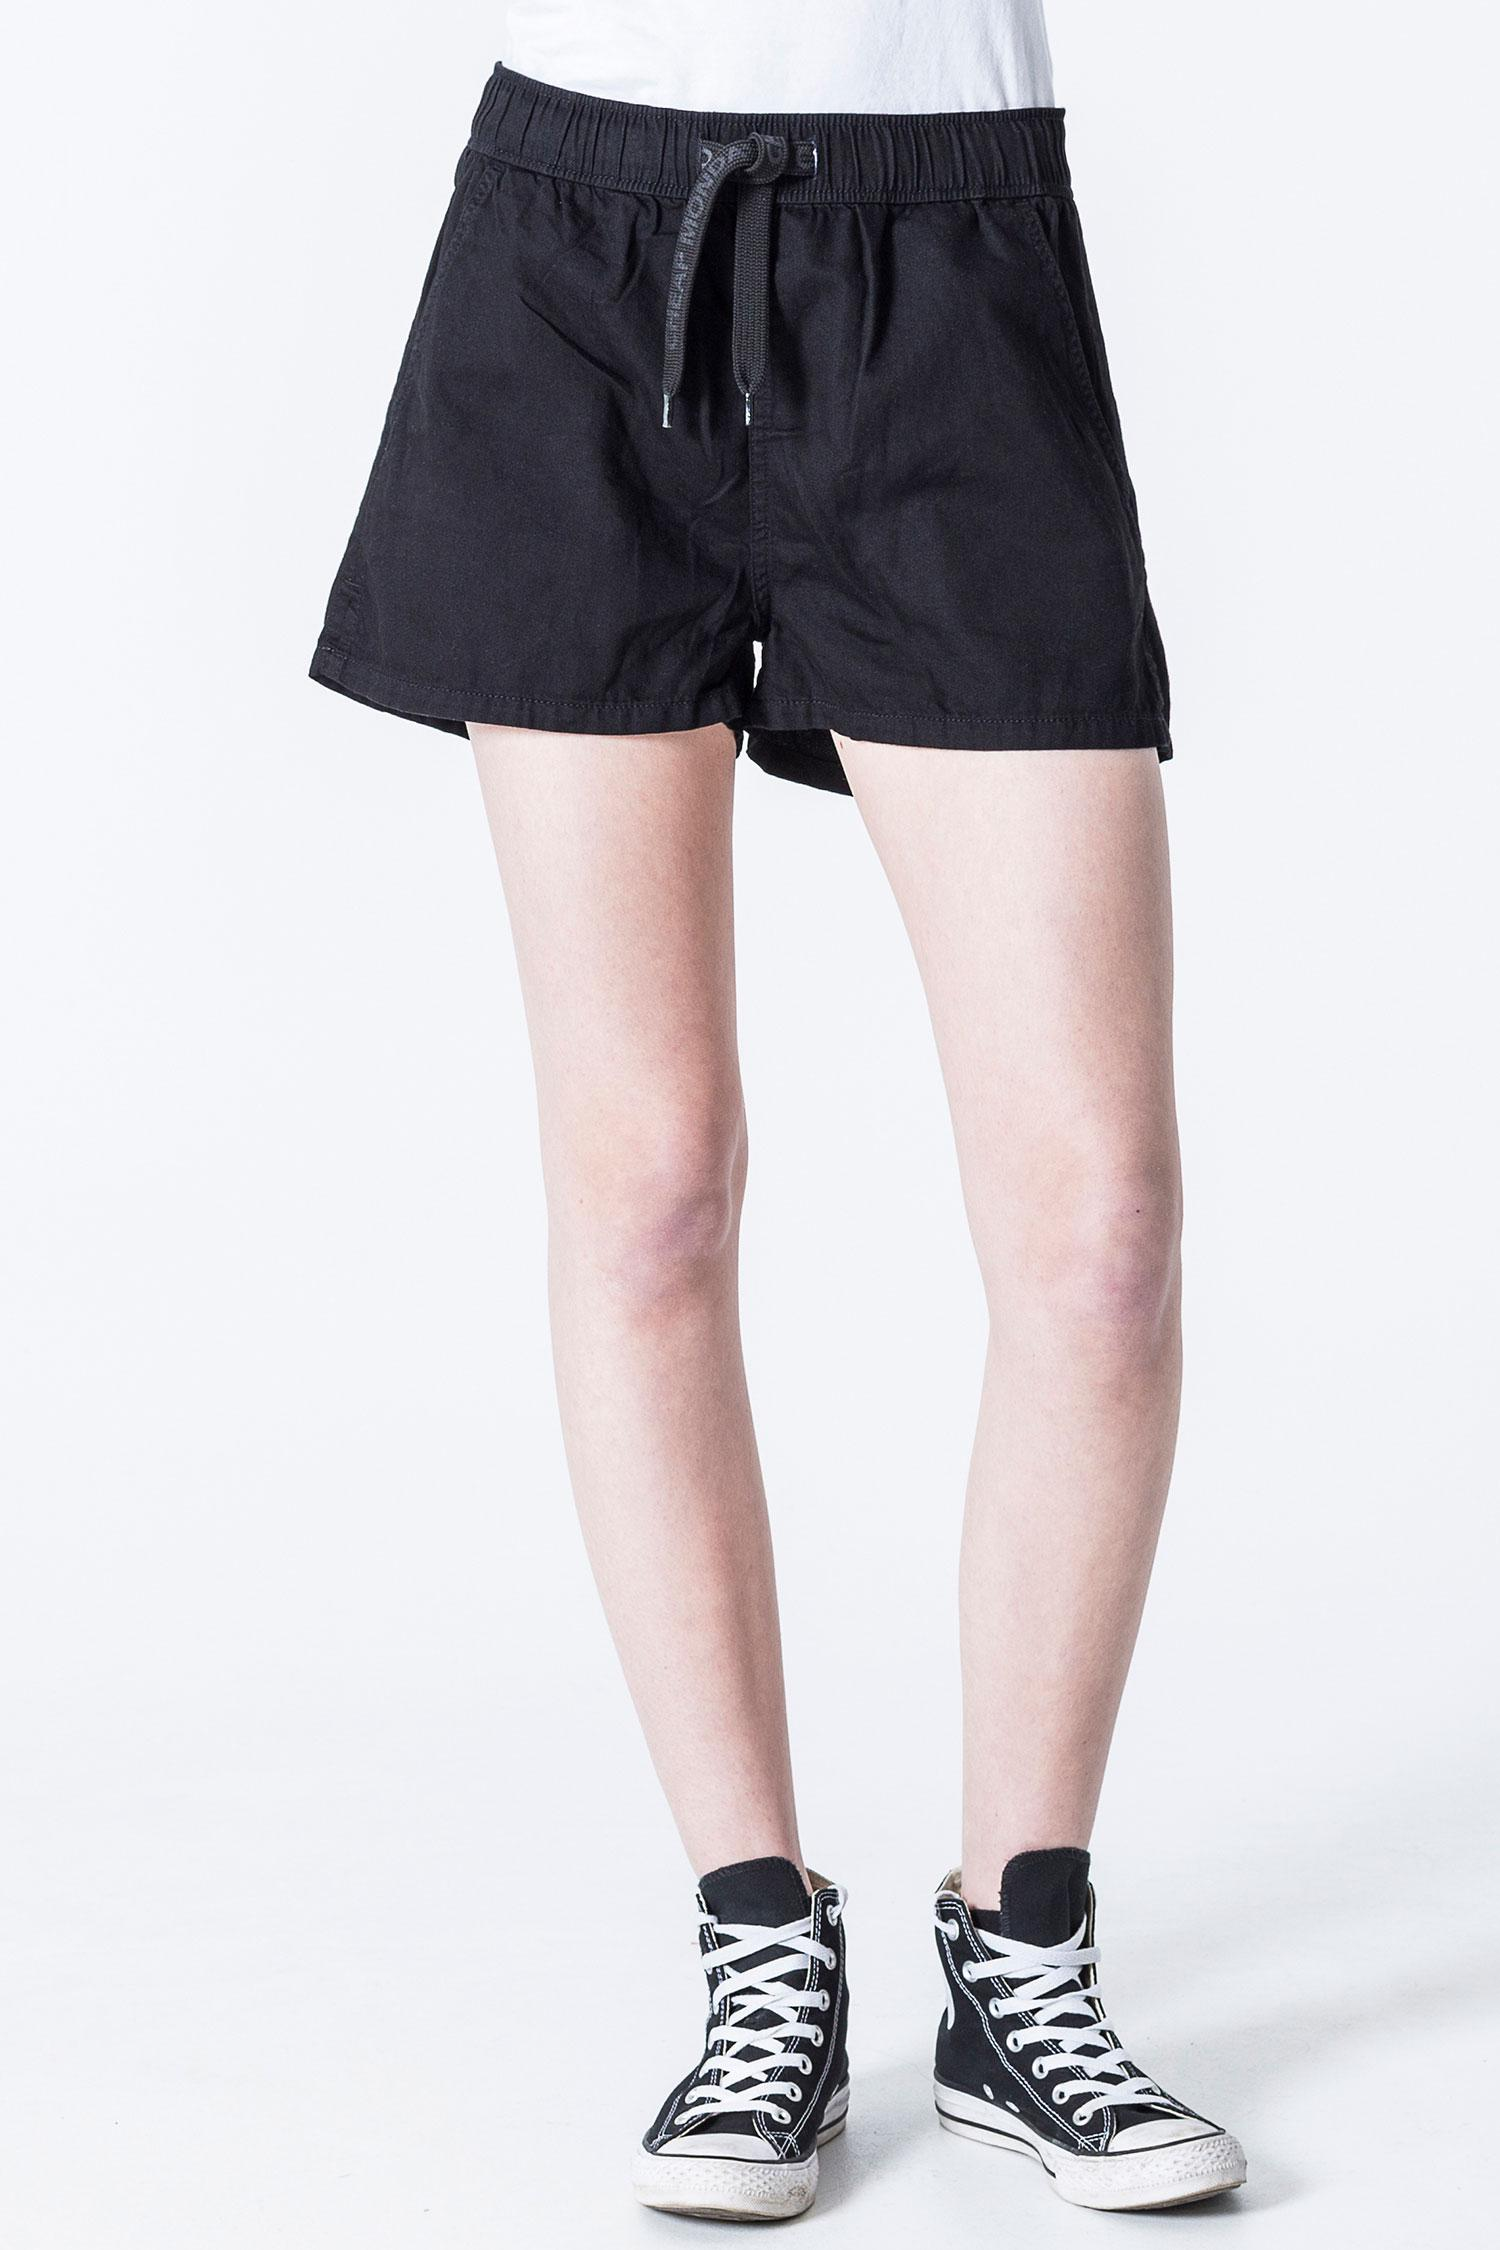 d3557a2b8c Cheap Monday Wave Jaded Black Shorts in Black - Lyst